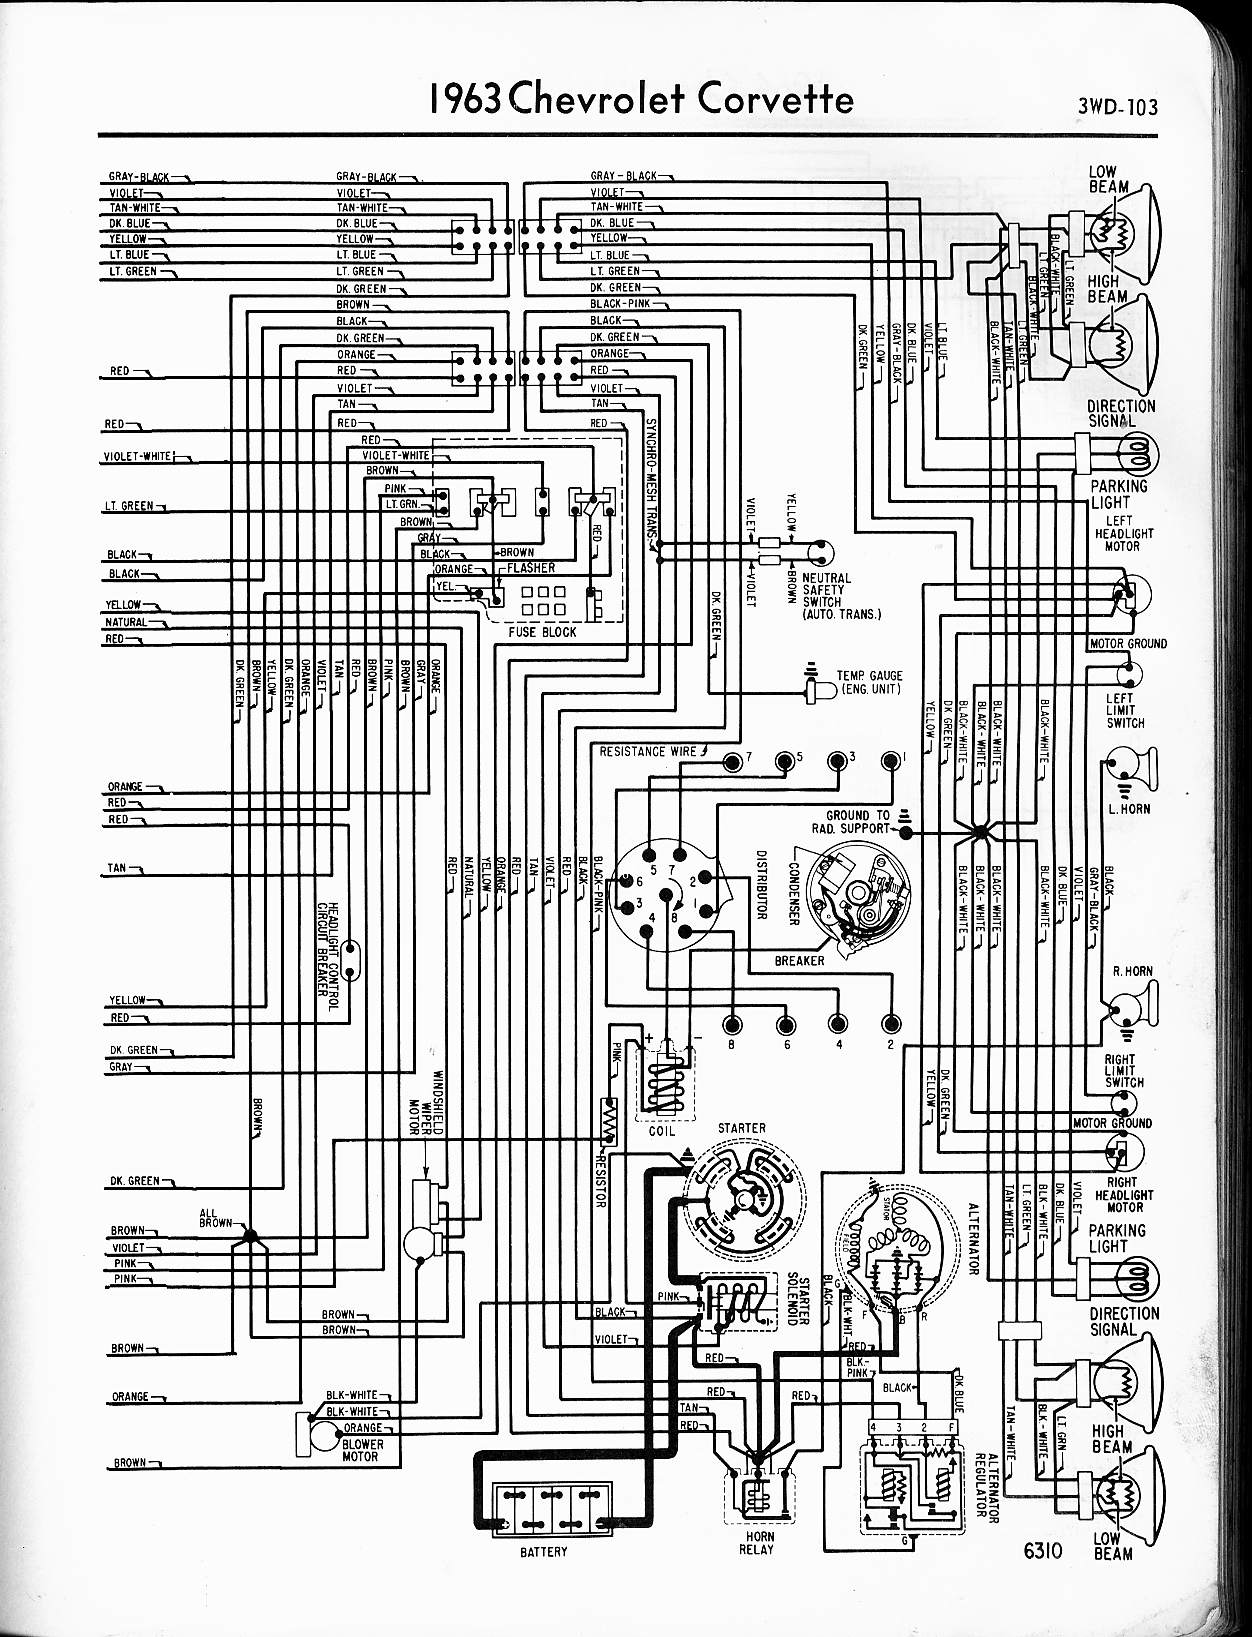 MWireChev63_3WD 103 57 65 chevy wiring diagrams 66 Corvette at bayanpartner.co